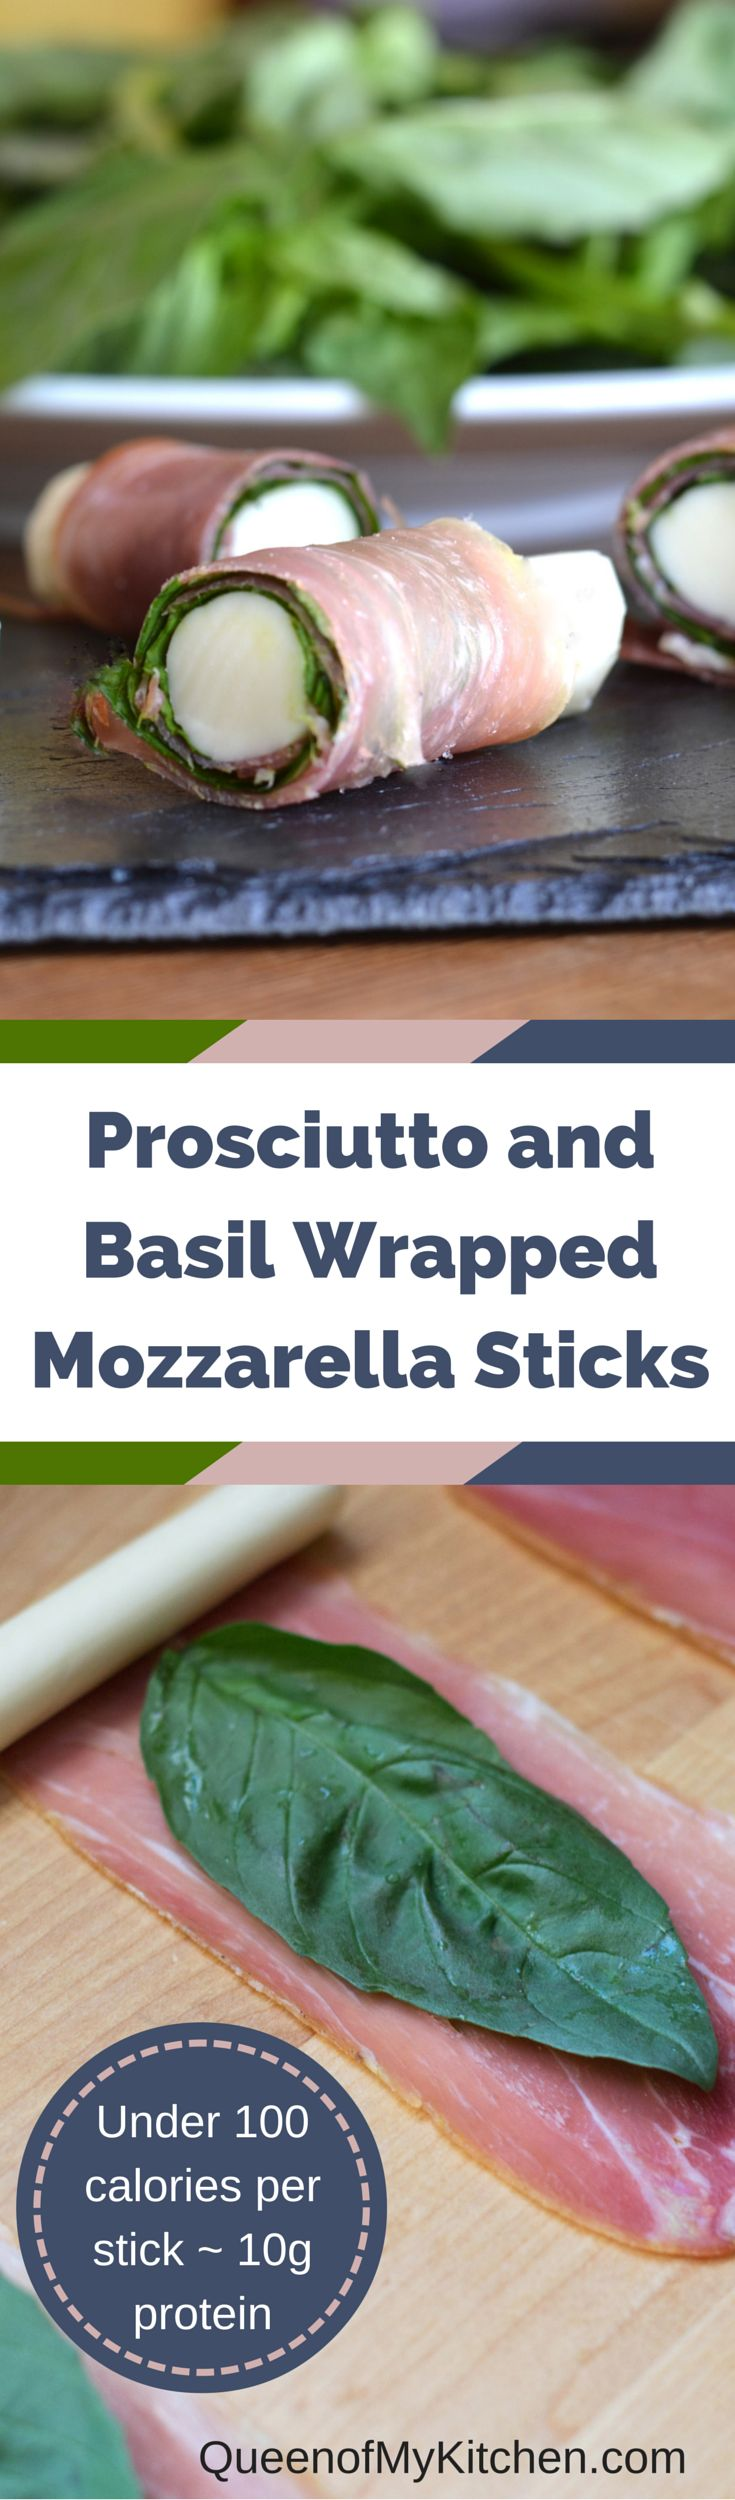 An easy and elegant appetizer or a protein packed under 100 calorie snack.  Mozzarella sticks are not just for lunch boxes!